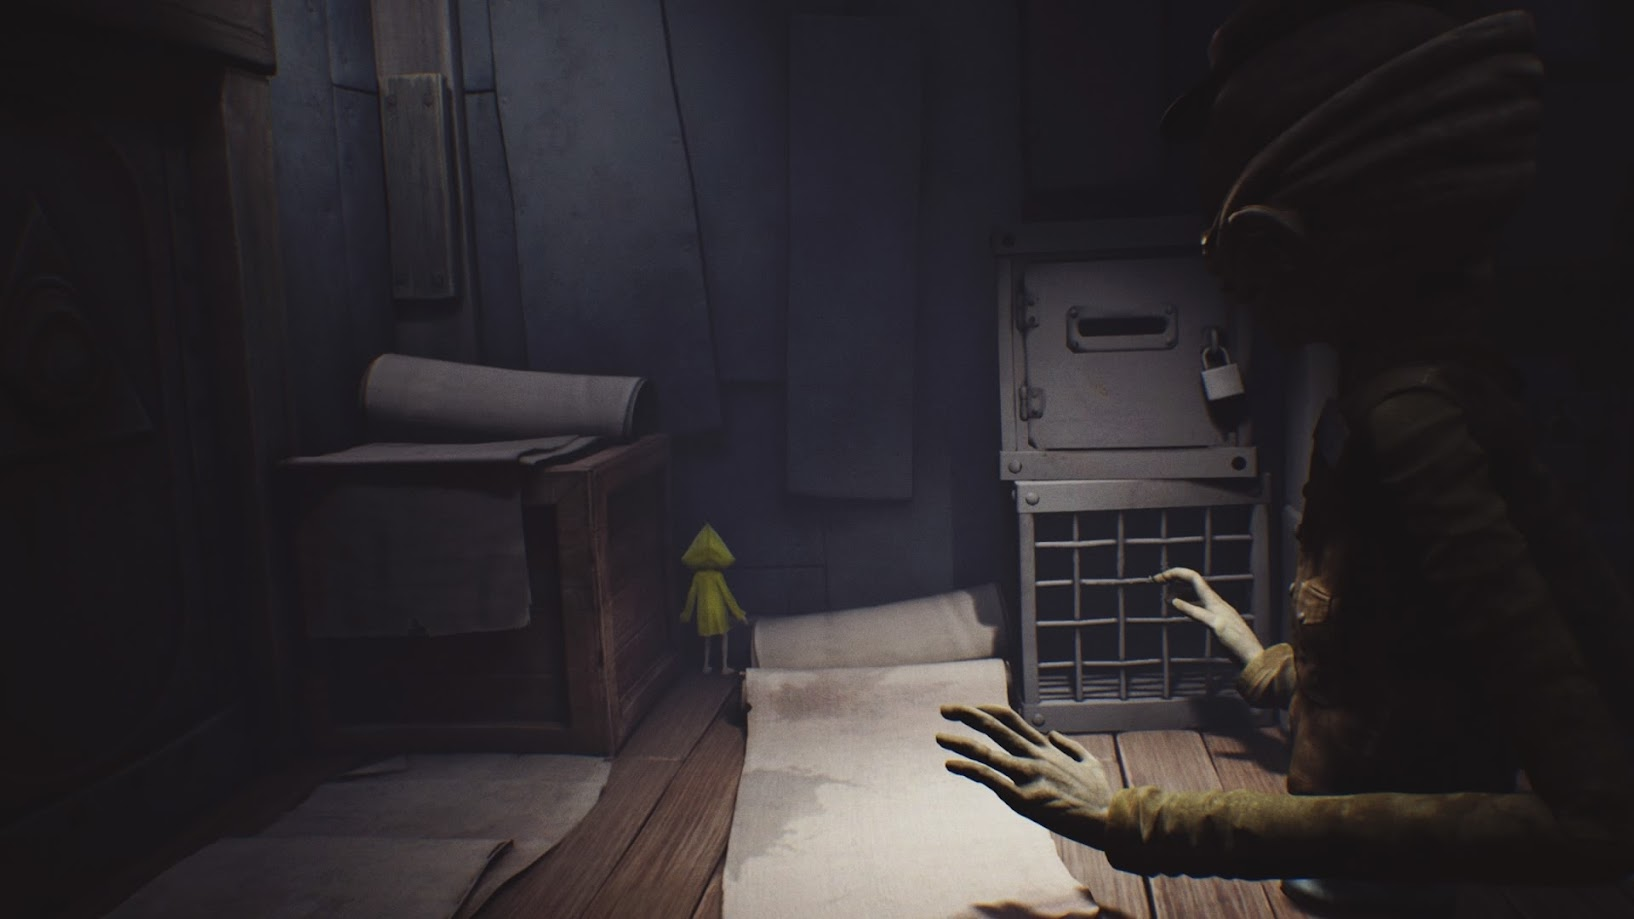 Little Nightmares recenzja